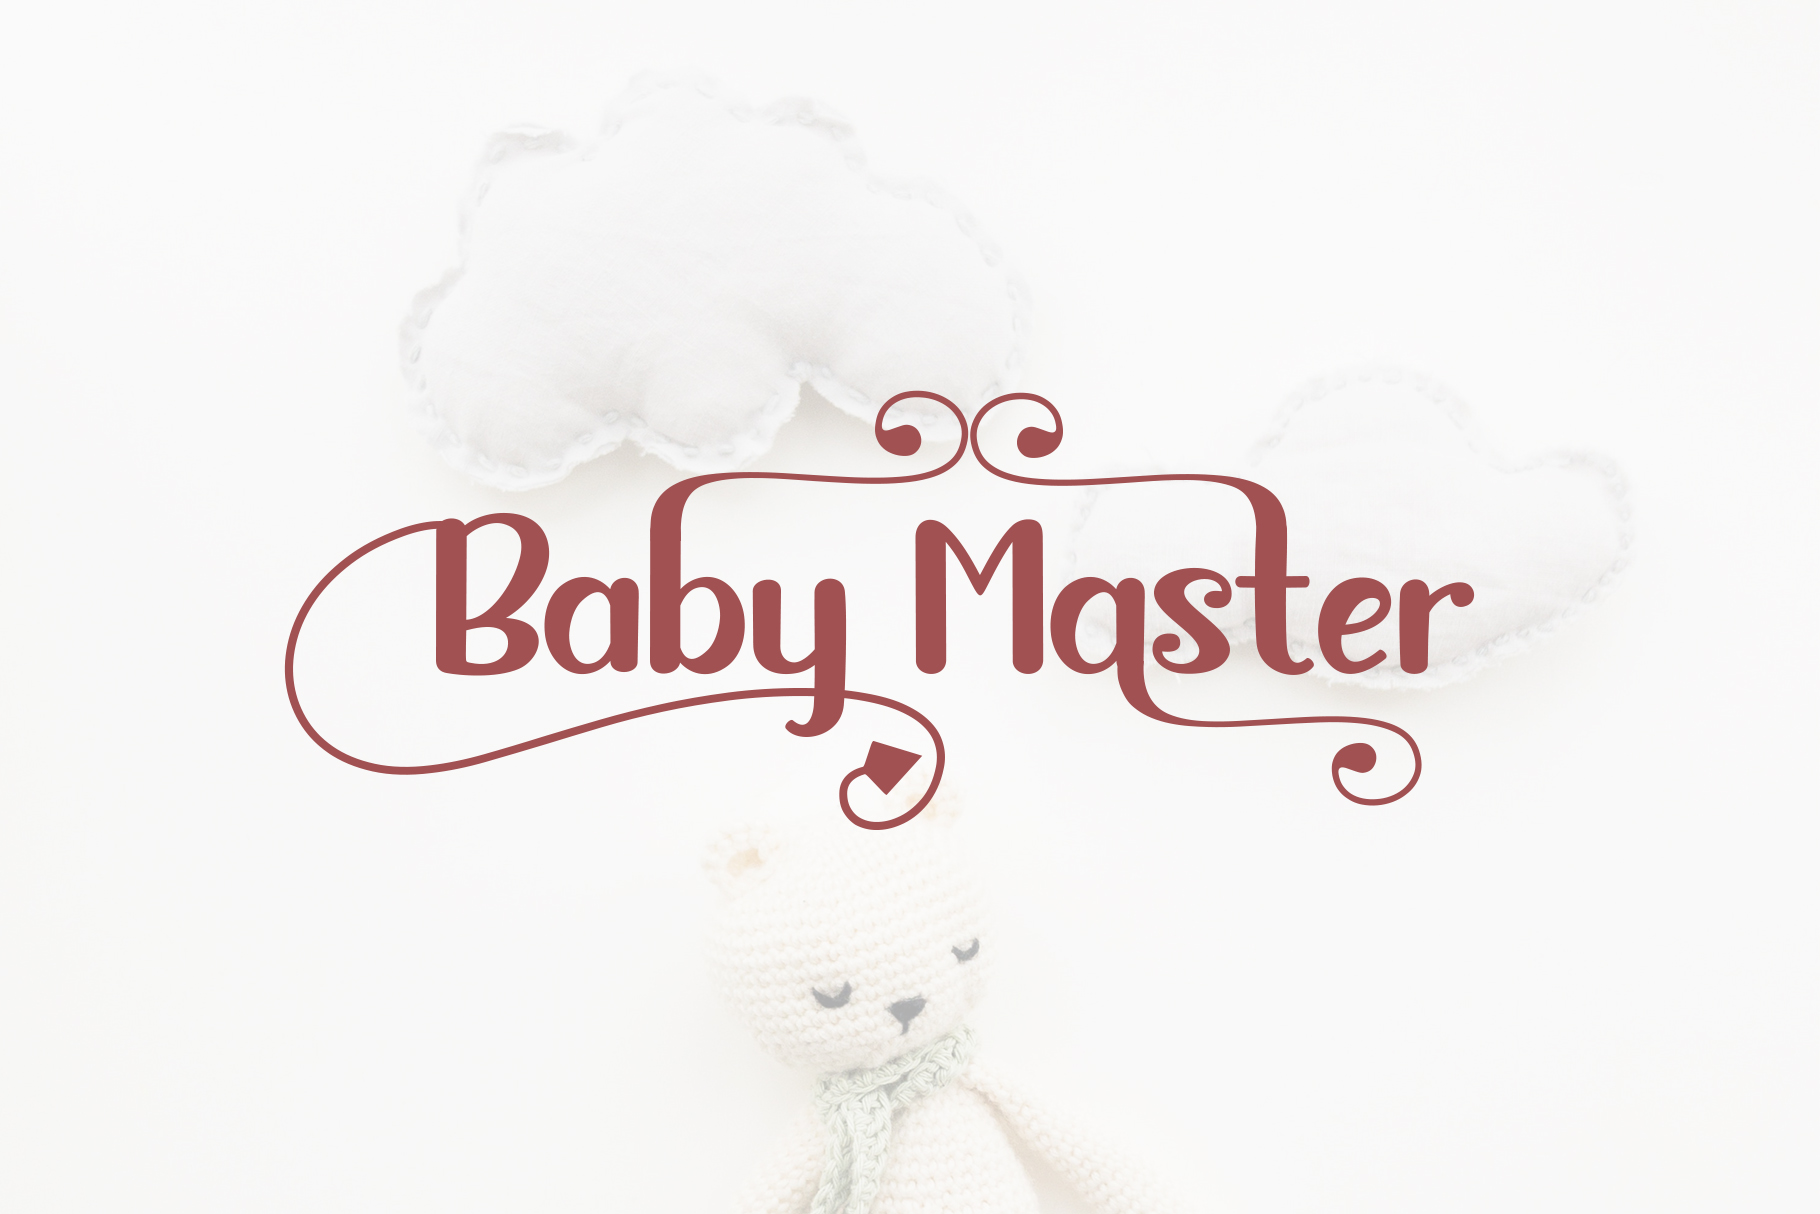 Baby Master example image 3